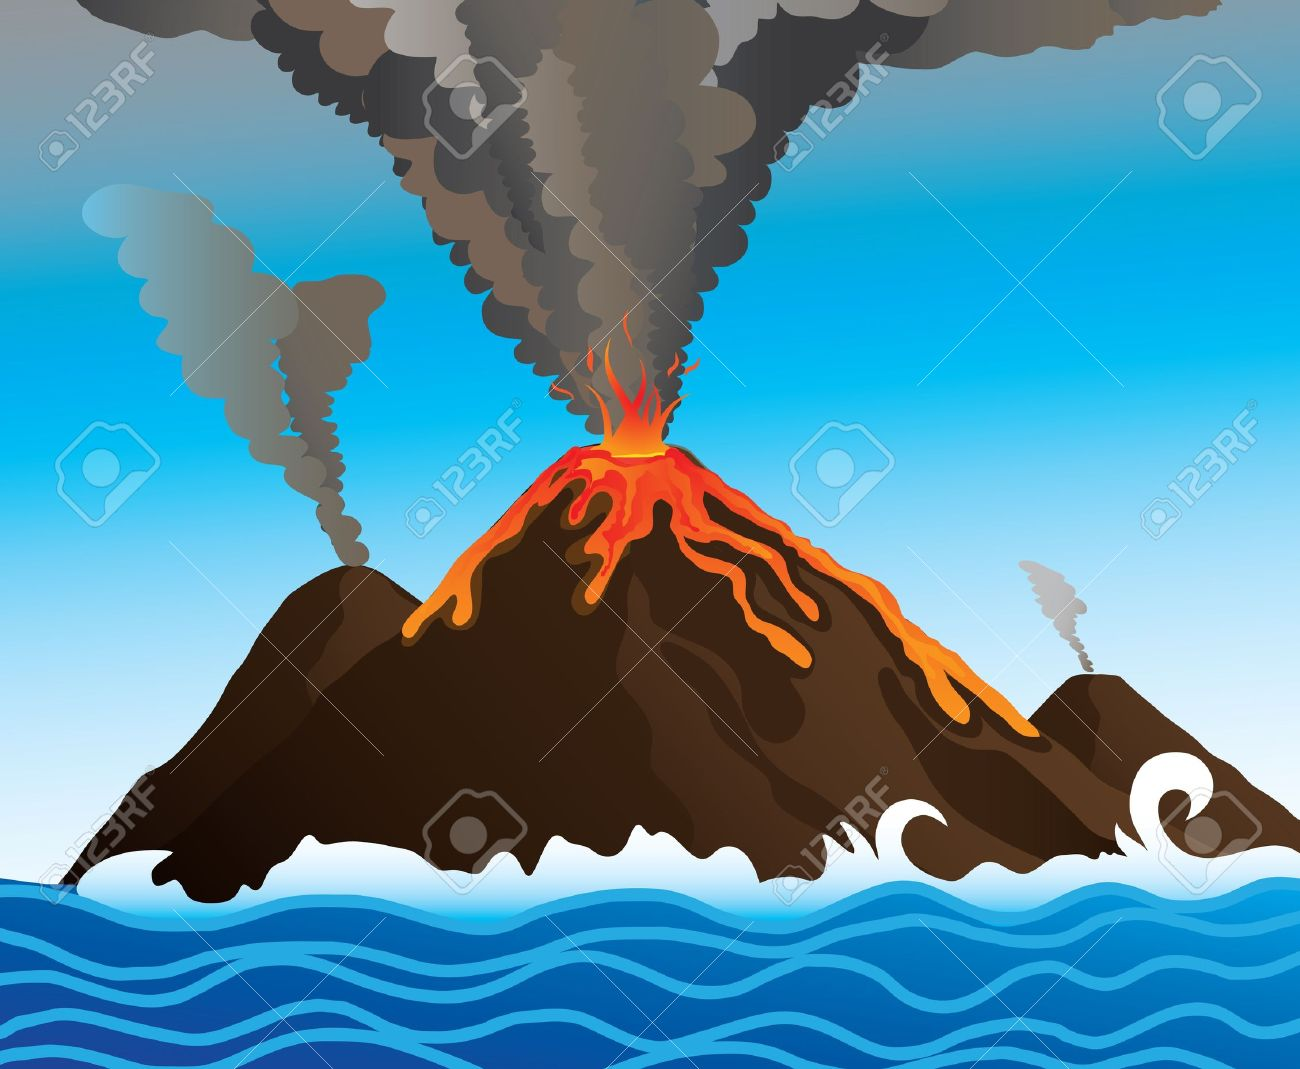 V Is For Volcano Clipart Volcano clipart 2   359 x 500